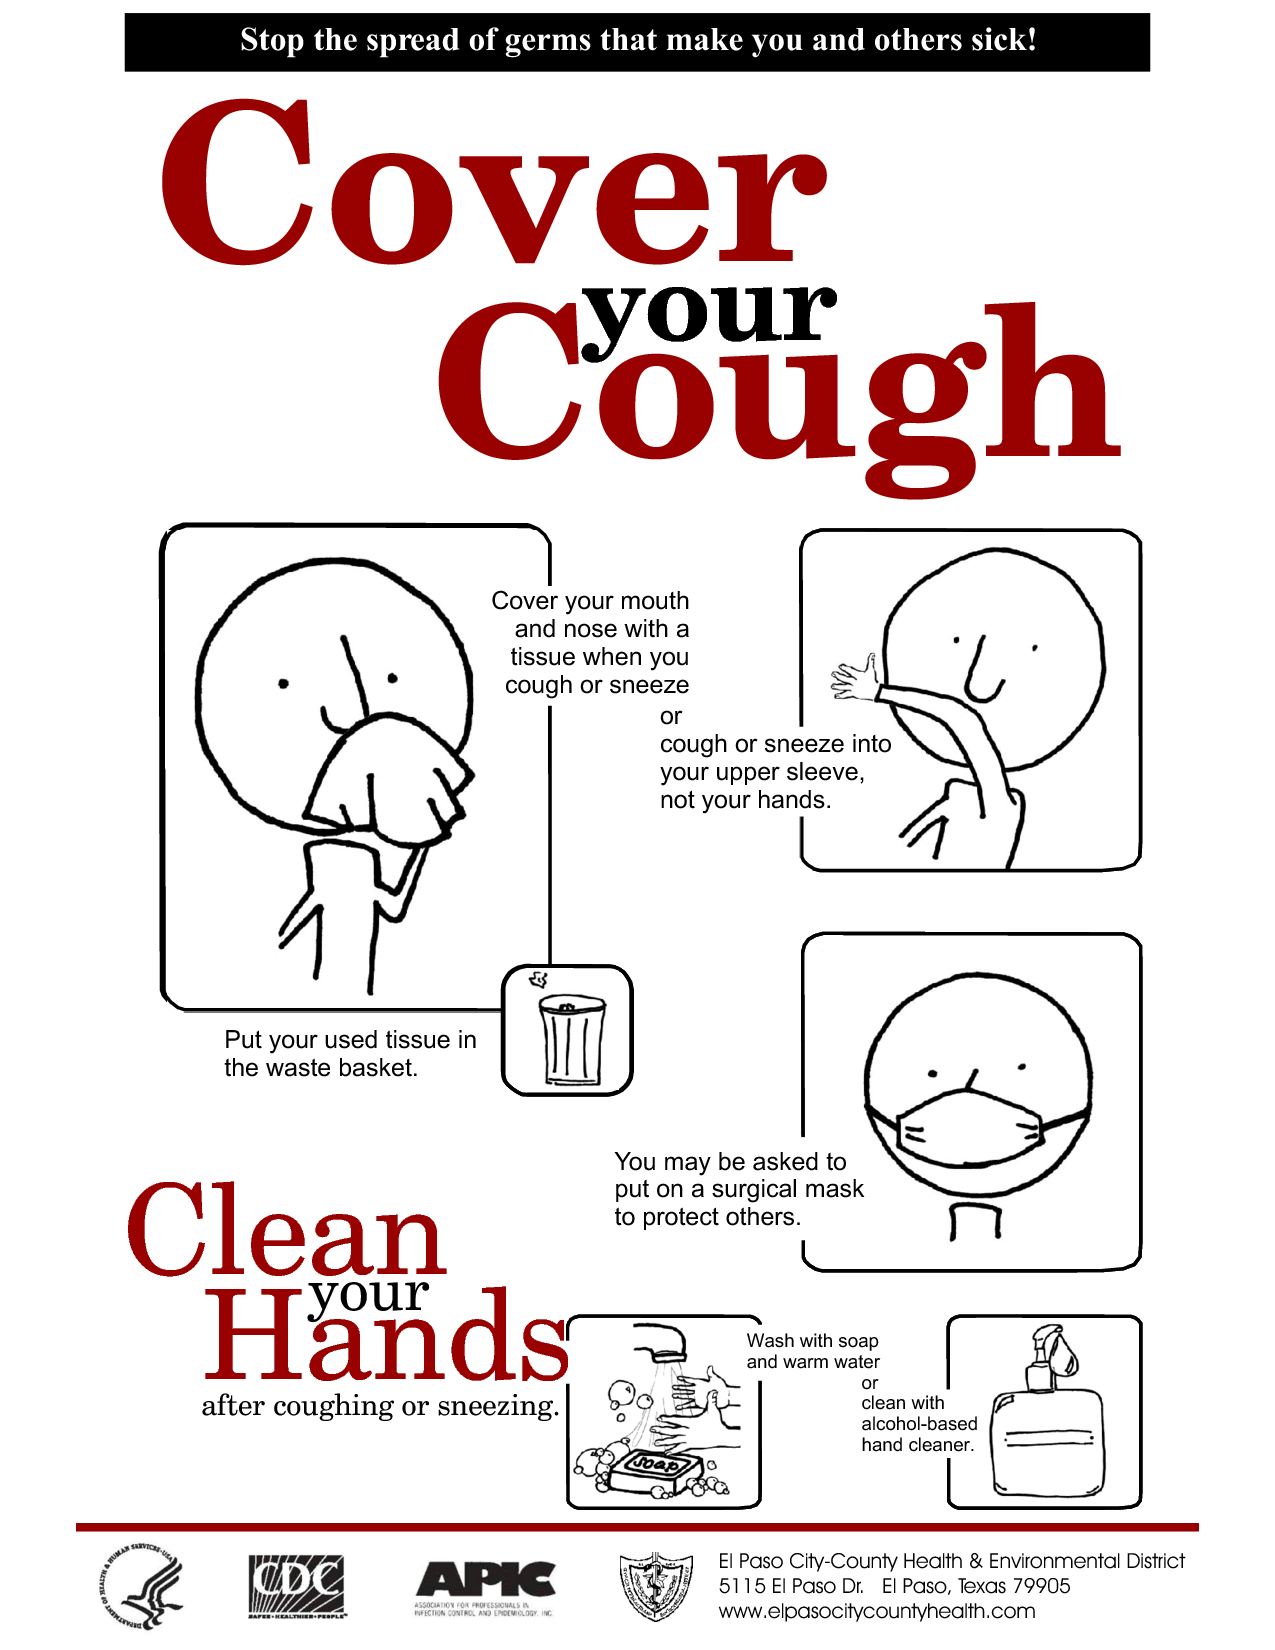 Cover Your Mouth And Nose When Coughing Or Sneezing Use A